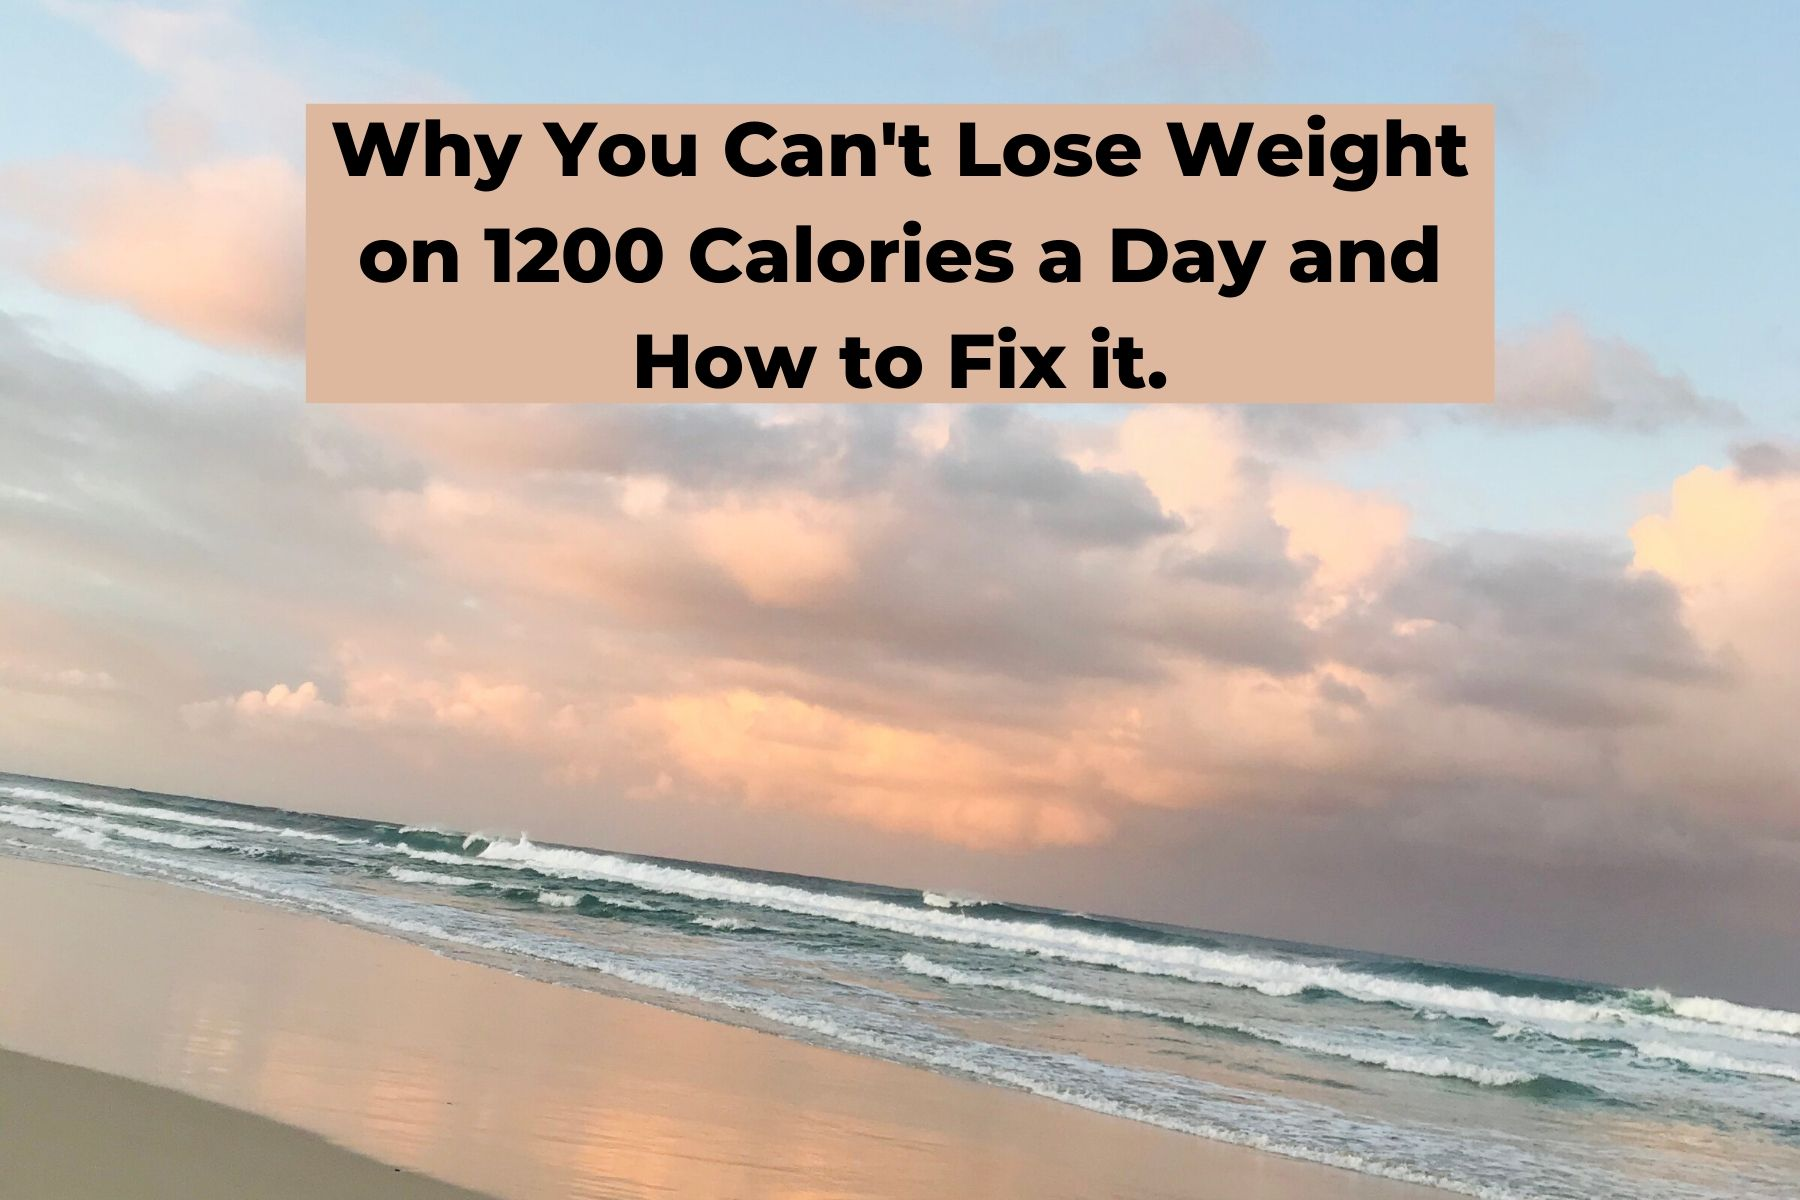 Why You Can't Lose Weight on 1200 Calories a Day